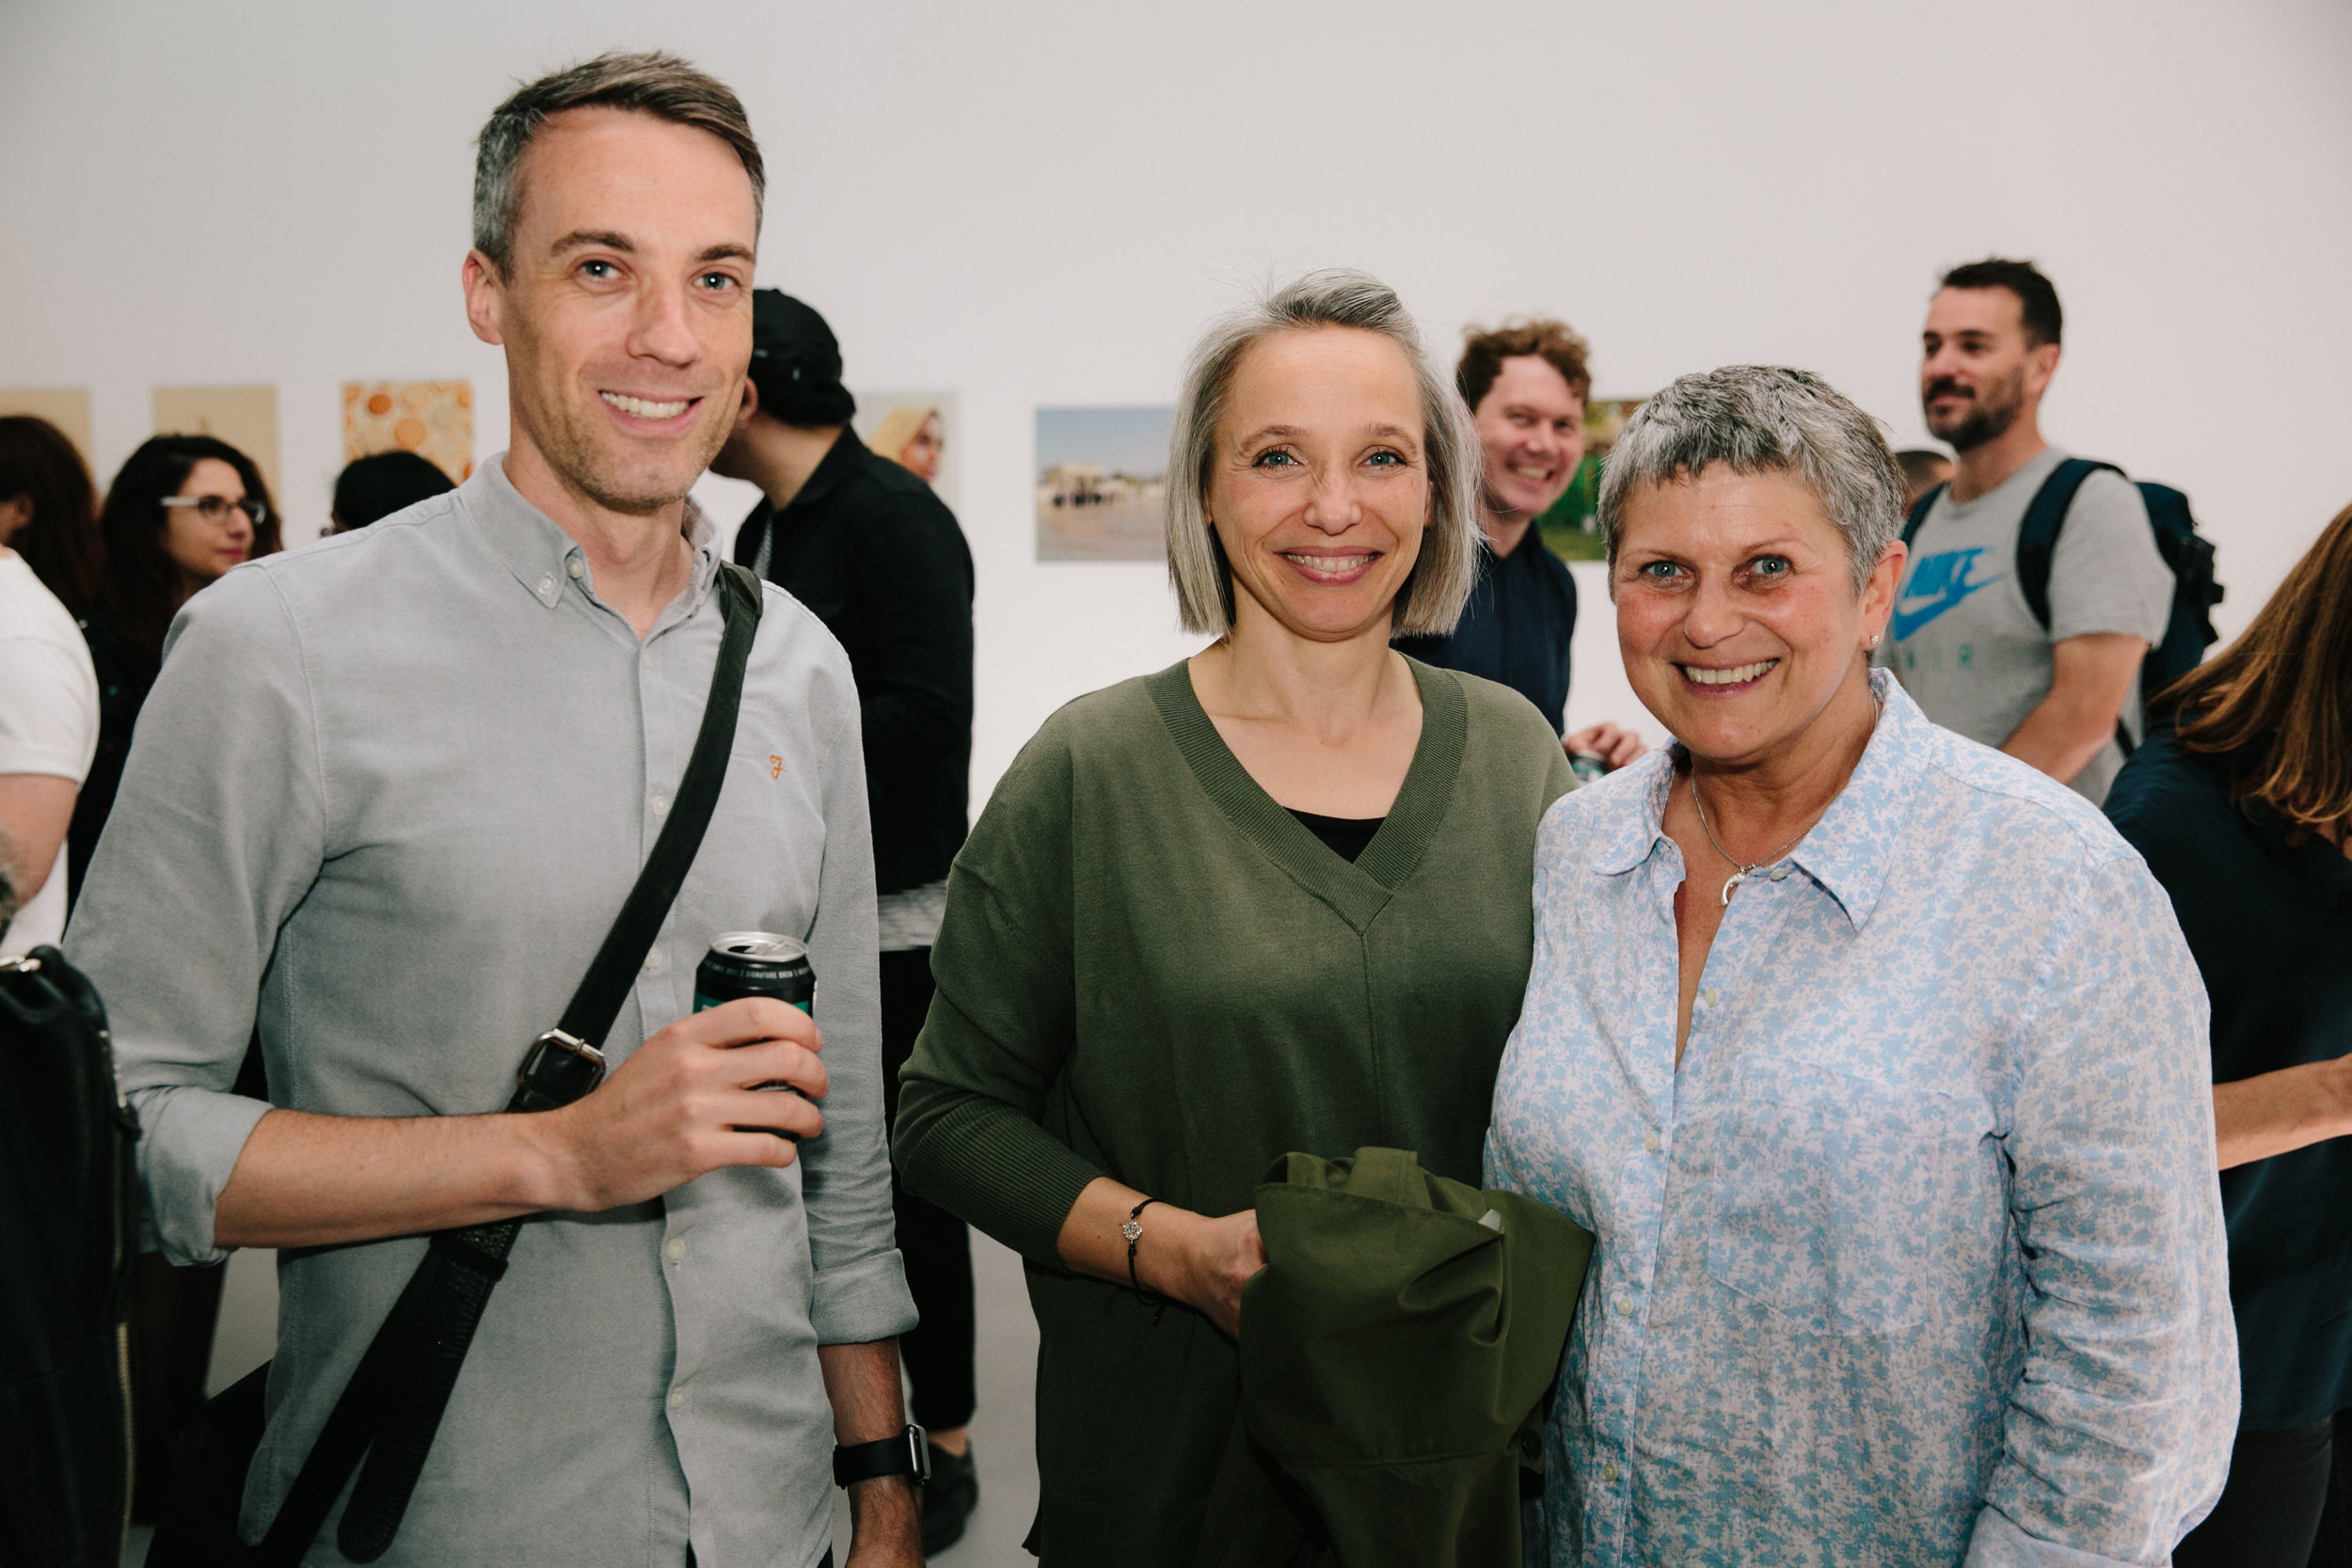 Three of the Judges for LPA Futures 2019, Tom Dance, Ingrid Wimart & Lesley Scott.